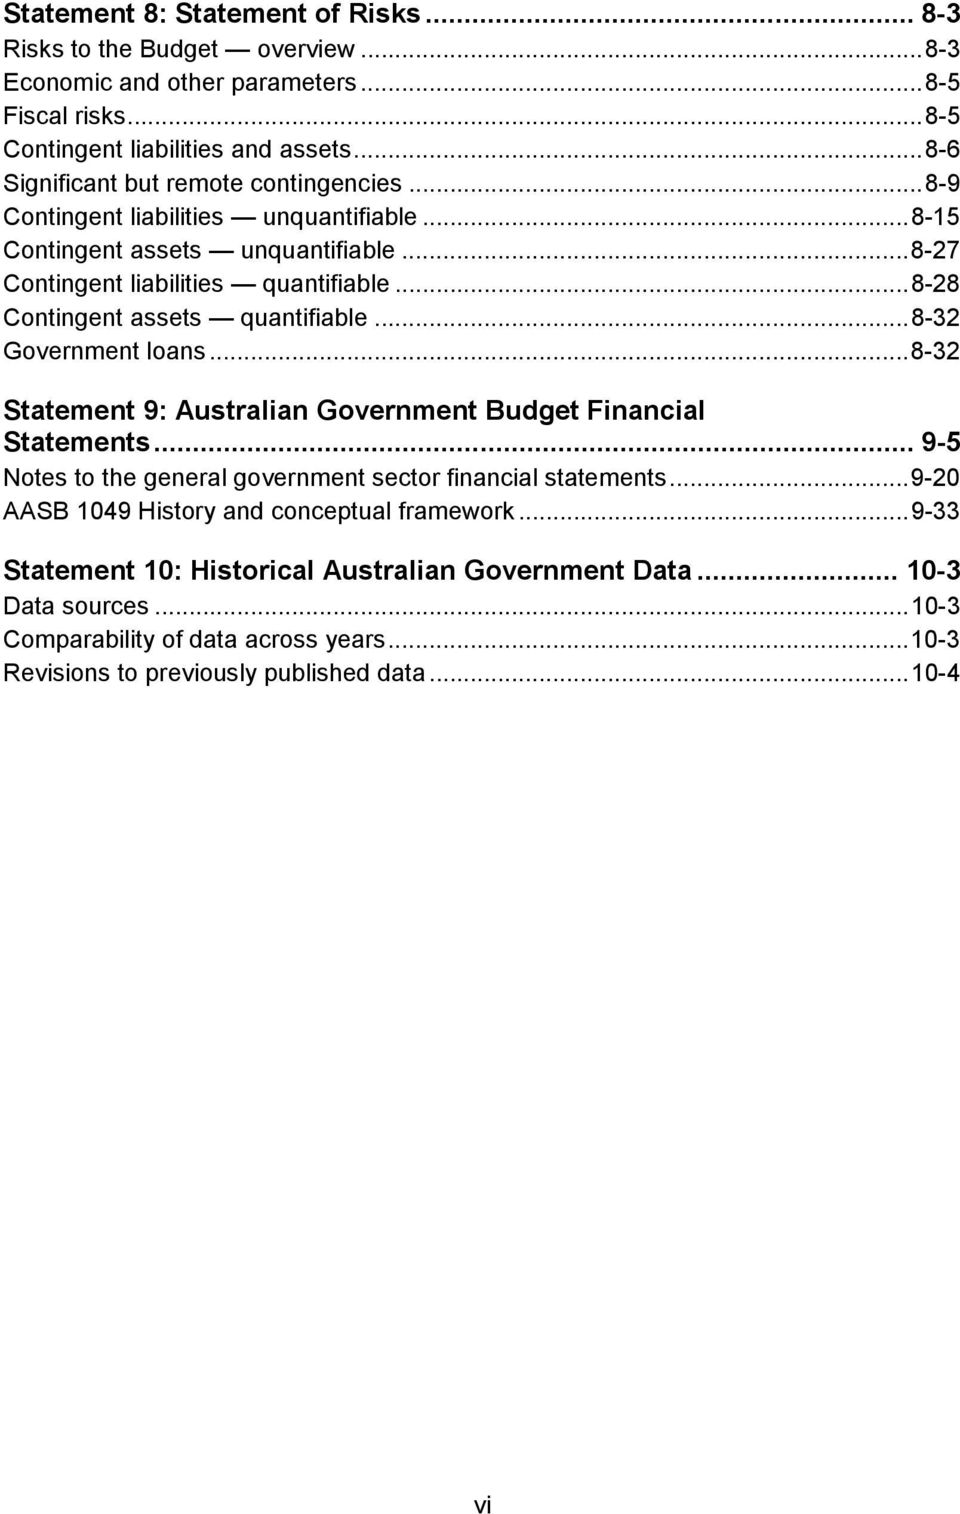 .. 8-28 Contingent assets quantifiable... 8-32 Government loans... 8-32 Statement 9: Australian Government Budget Financial Statements.